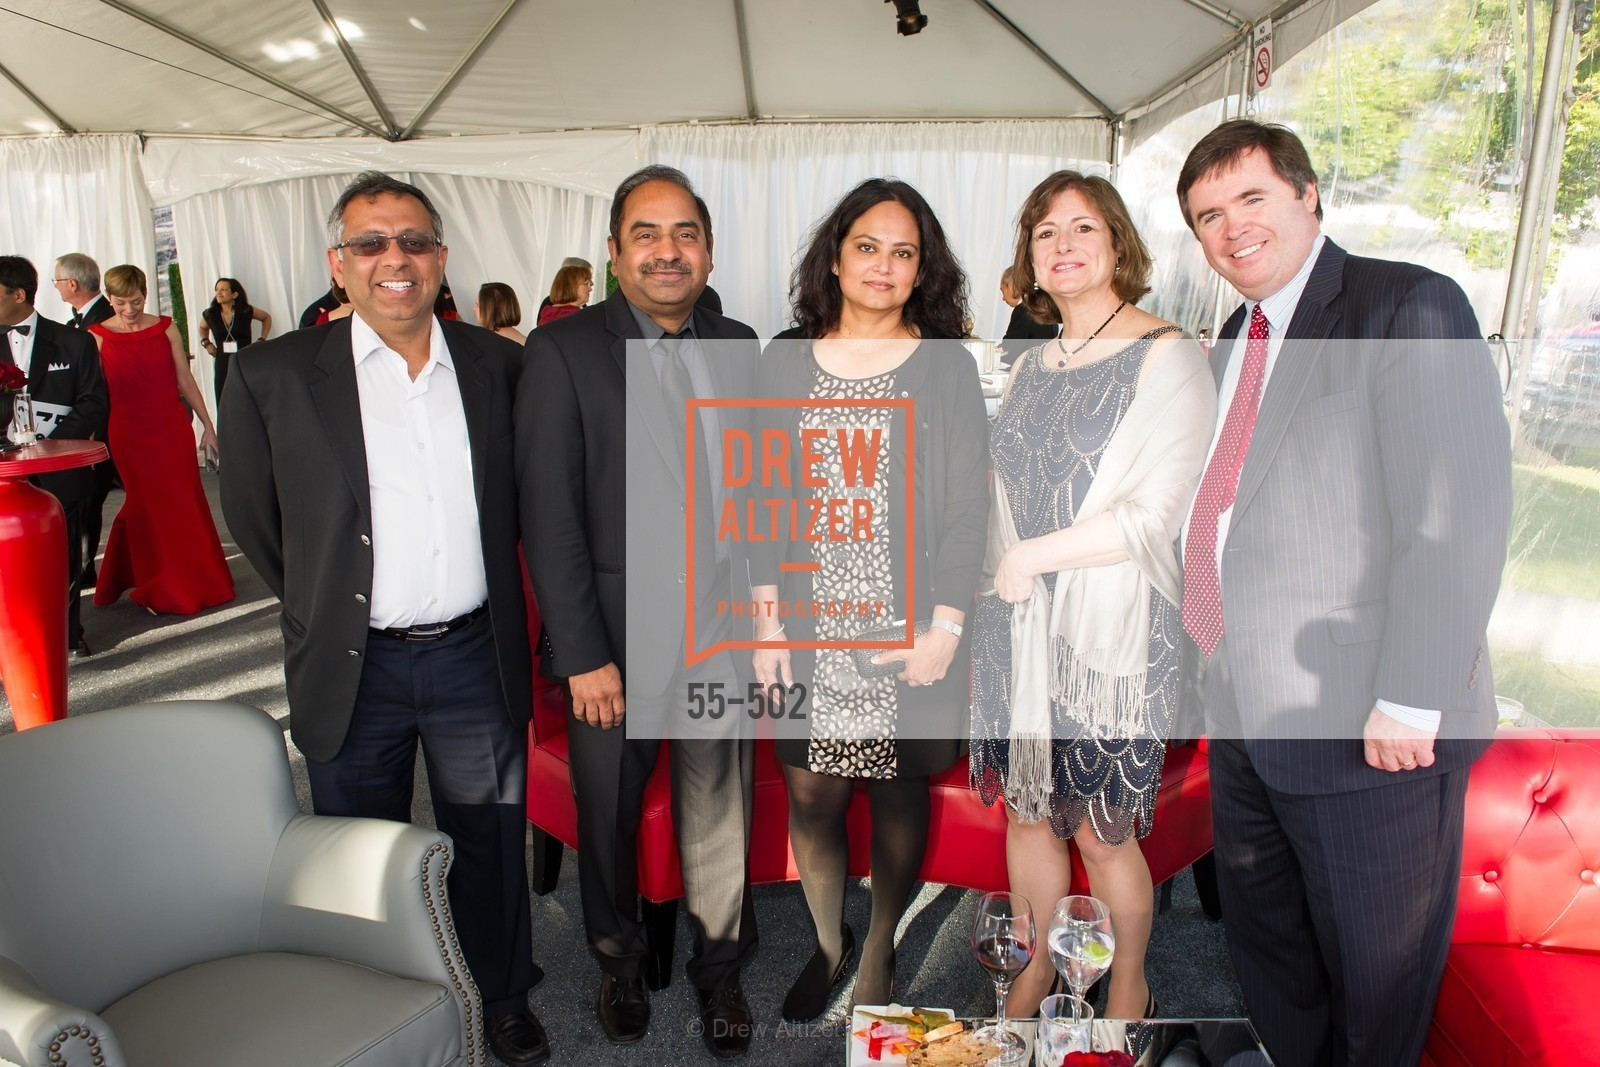 Sanjeev Kumar, Sagar Anisingaraju, Latha Anisingaraju, Michelle Hodsdon, Philip Hodsdon, 2014 RED CROSS Gala Honoring Paula Downey as the American Red Cross Bay Area Chapter Humanitarian CEO of the Year, US. Treasure Island (The Great Lawn), April 5th, 2014,Drew Altizer, Drew Altizer Photography, full-service agency, private events, San Francisco photographer, photographer california